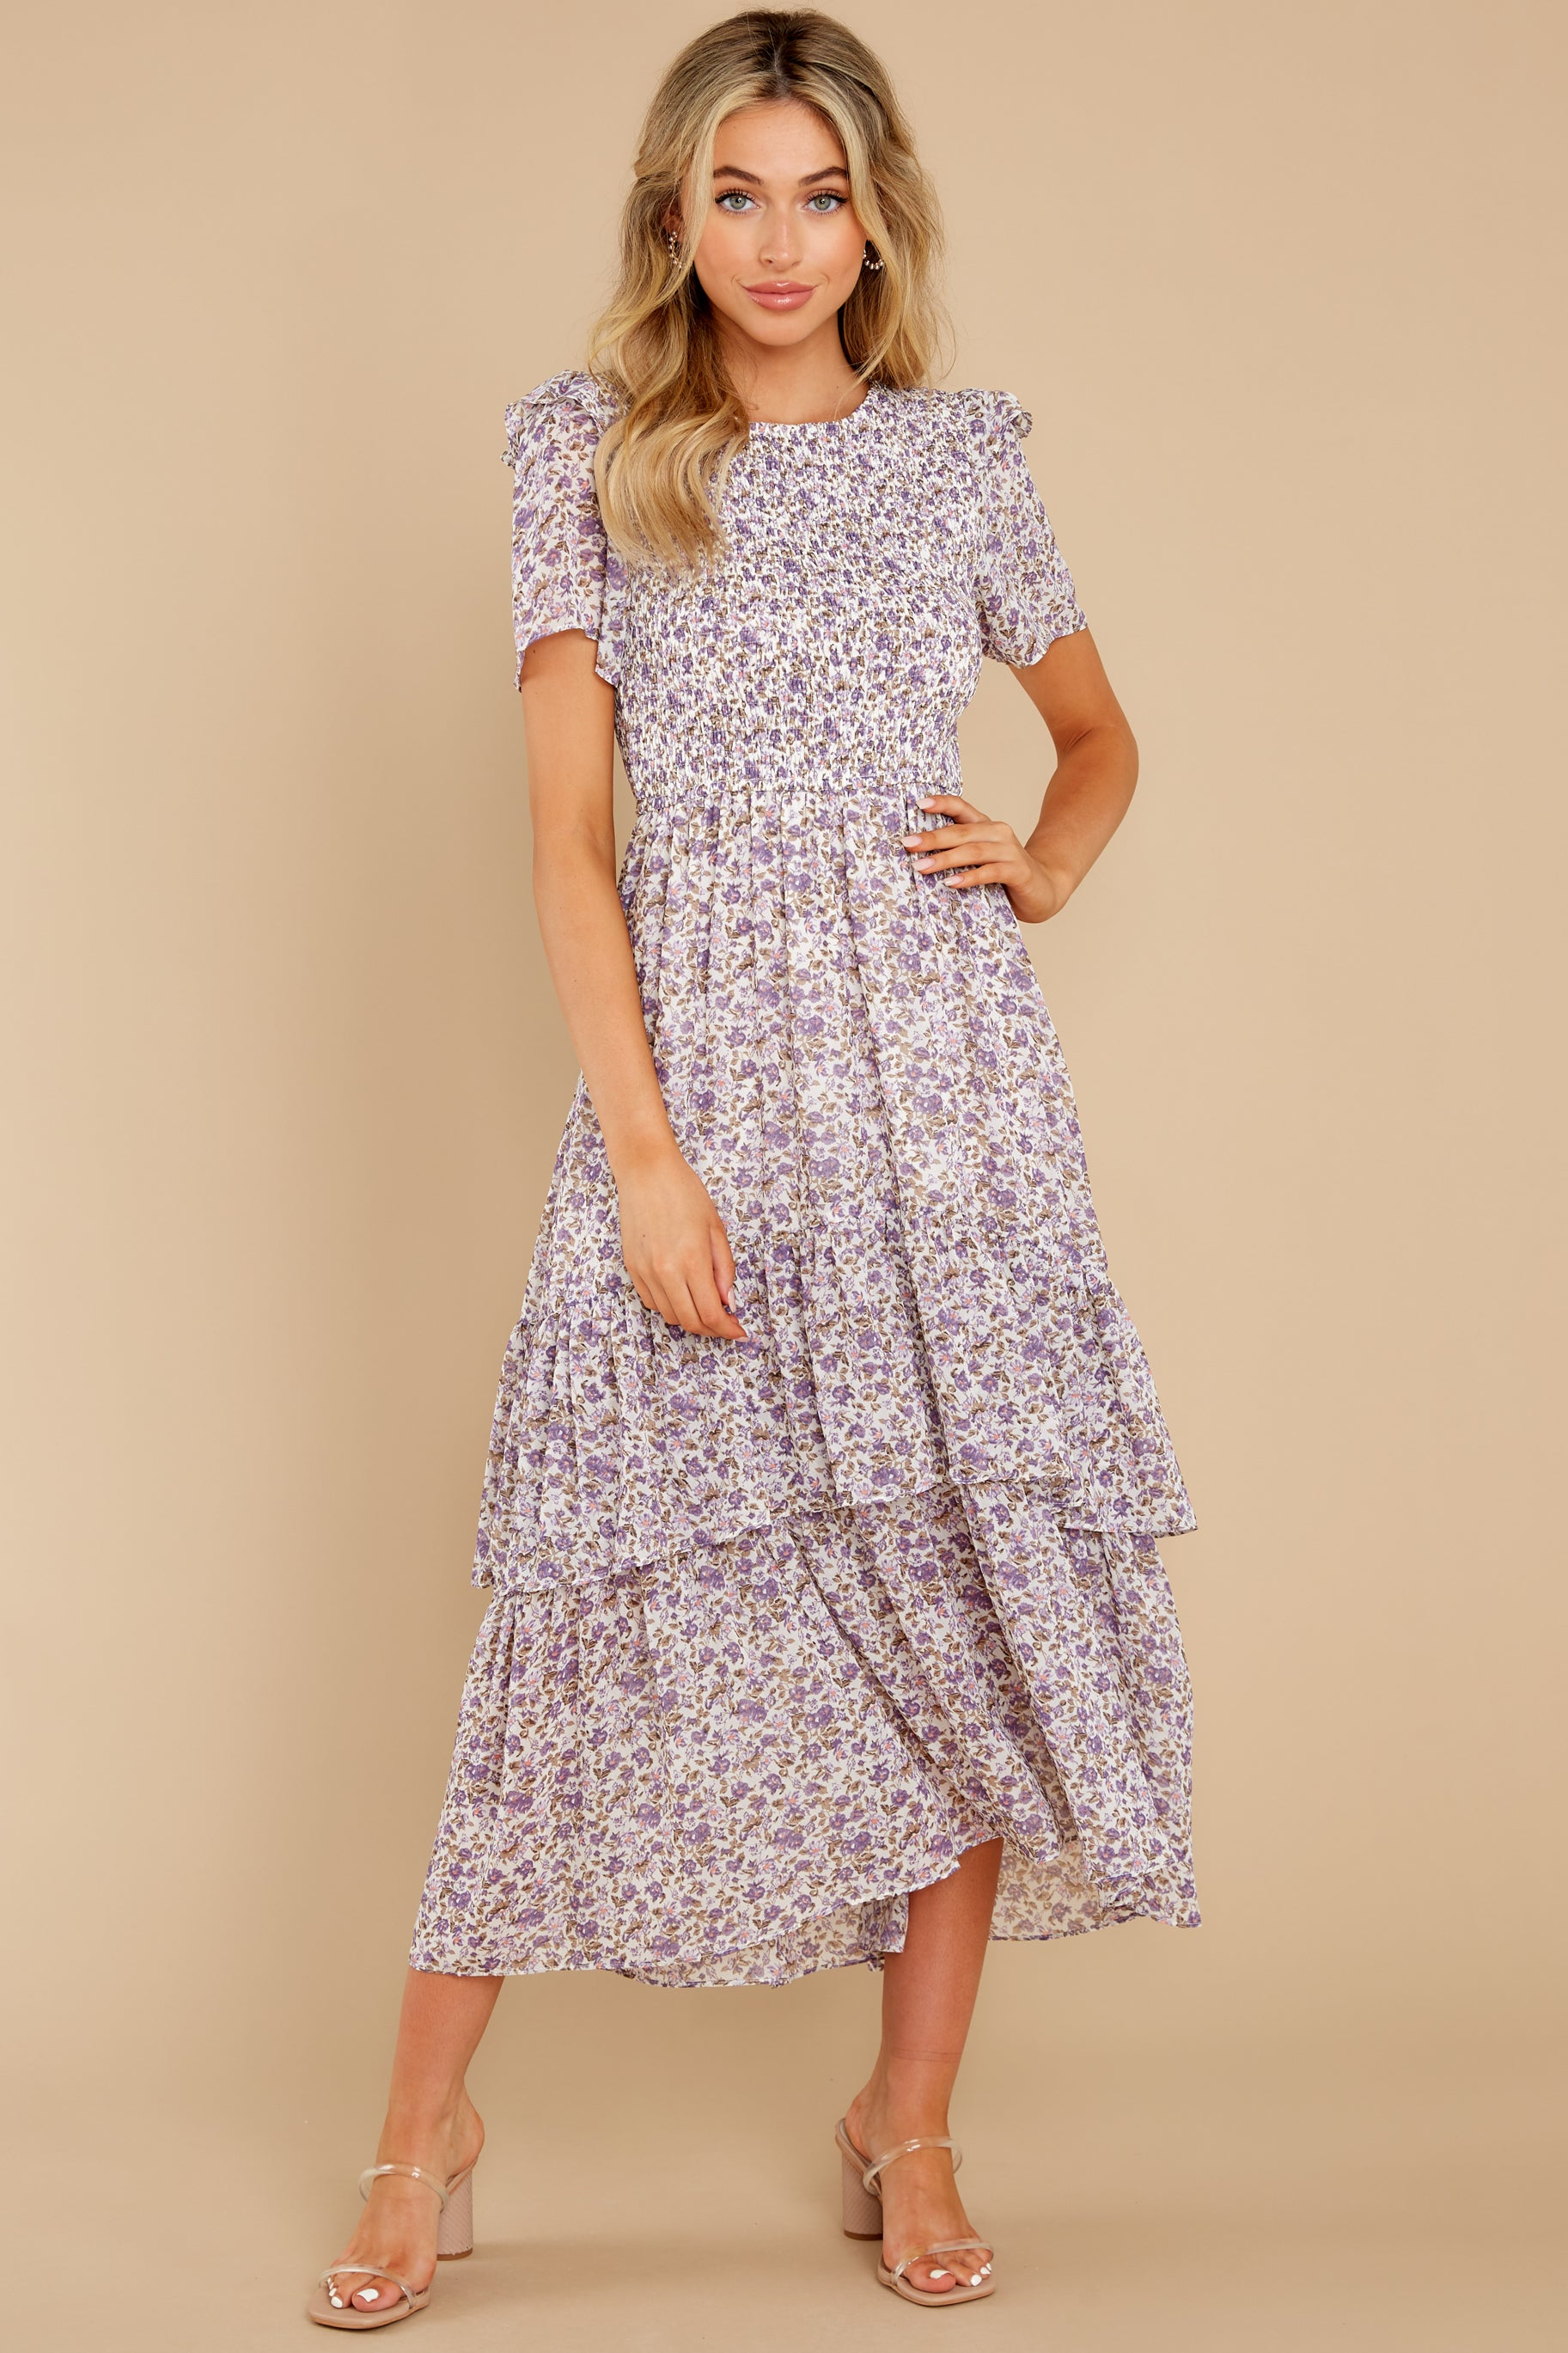 2 Magnetic Attraction Purple Floral Print Maxi Dress at reddress.com